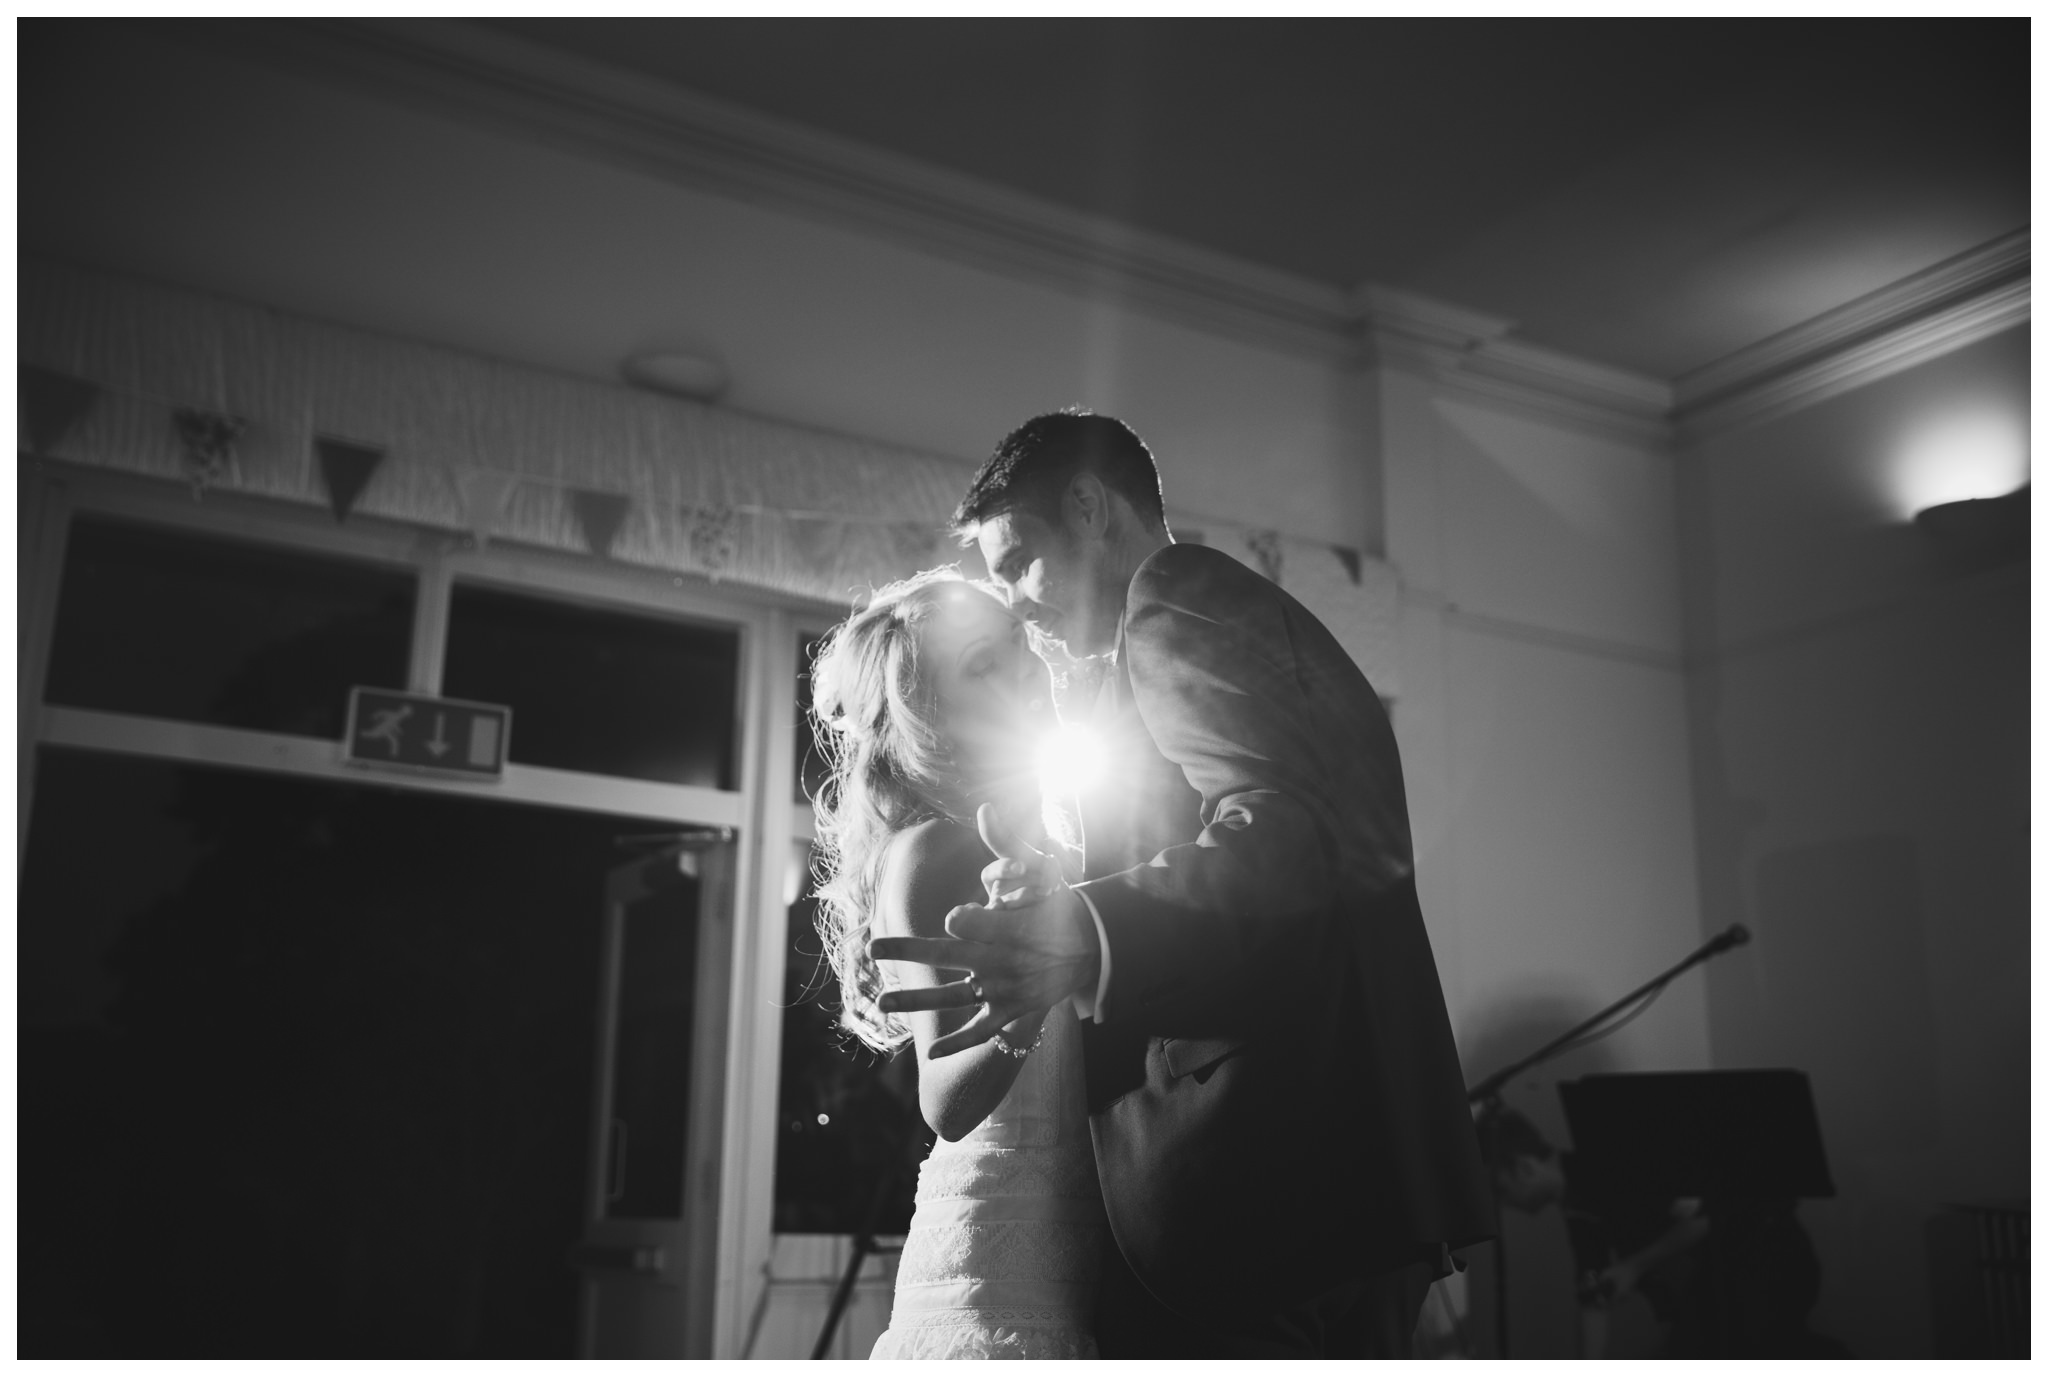 Richard Savage Photography - Wedding - Peterstone Court Brecon - 2016-05-11_0063